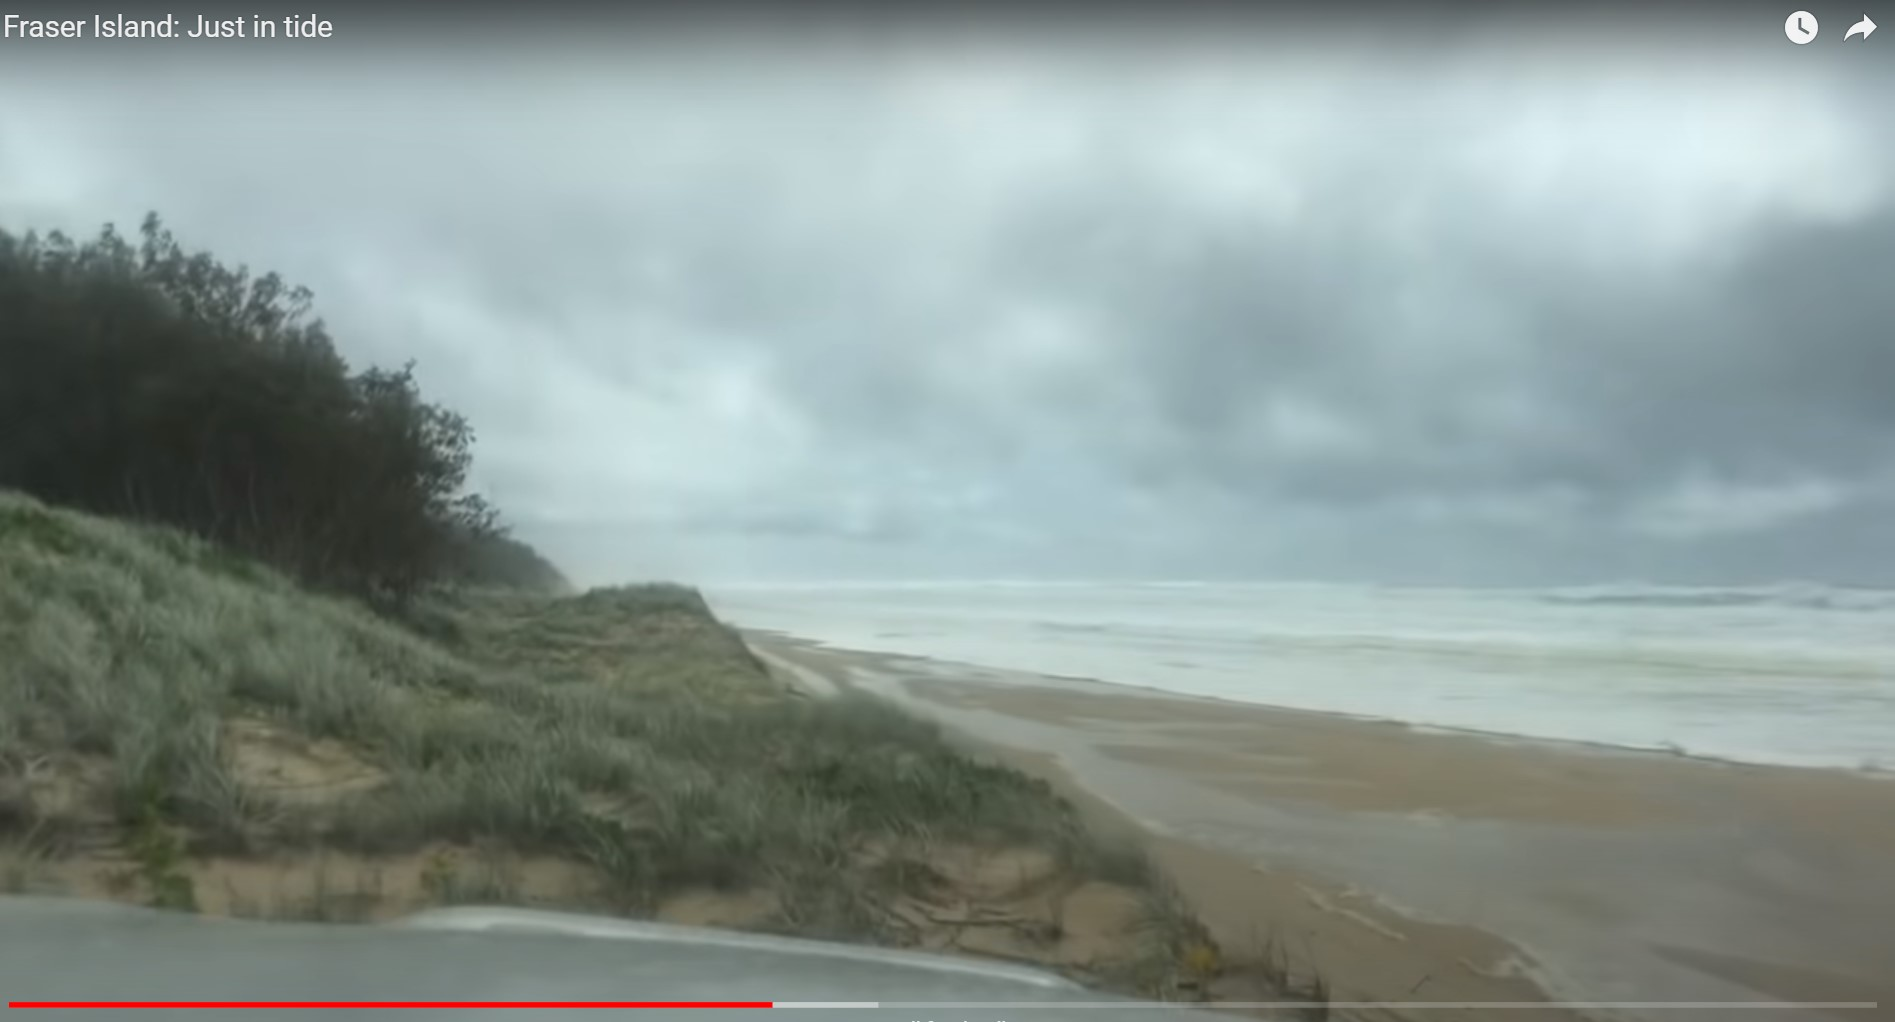 """Here's what's wrong with the DCS Fraser Island """"tide escape"""" video"""